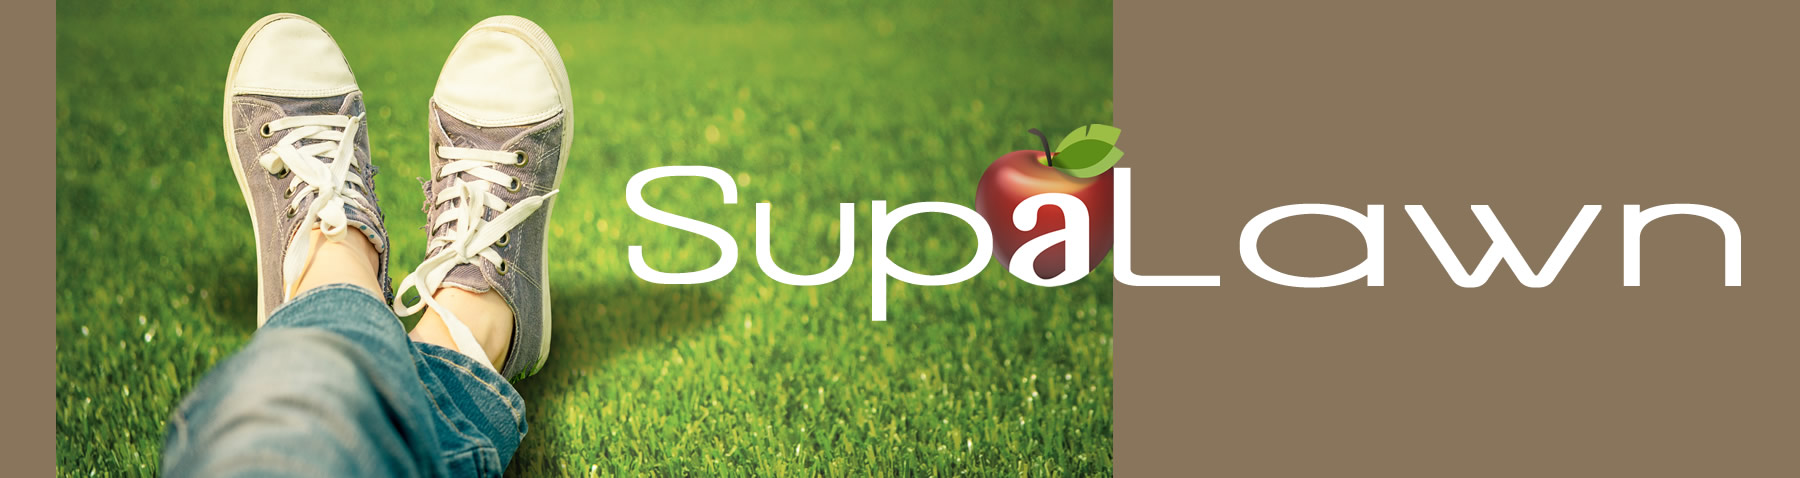 Apple SupaLawn Artificial Grass